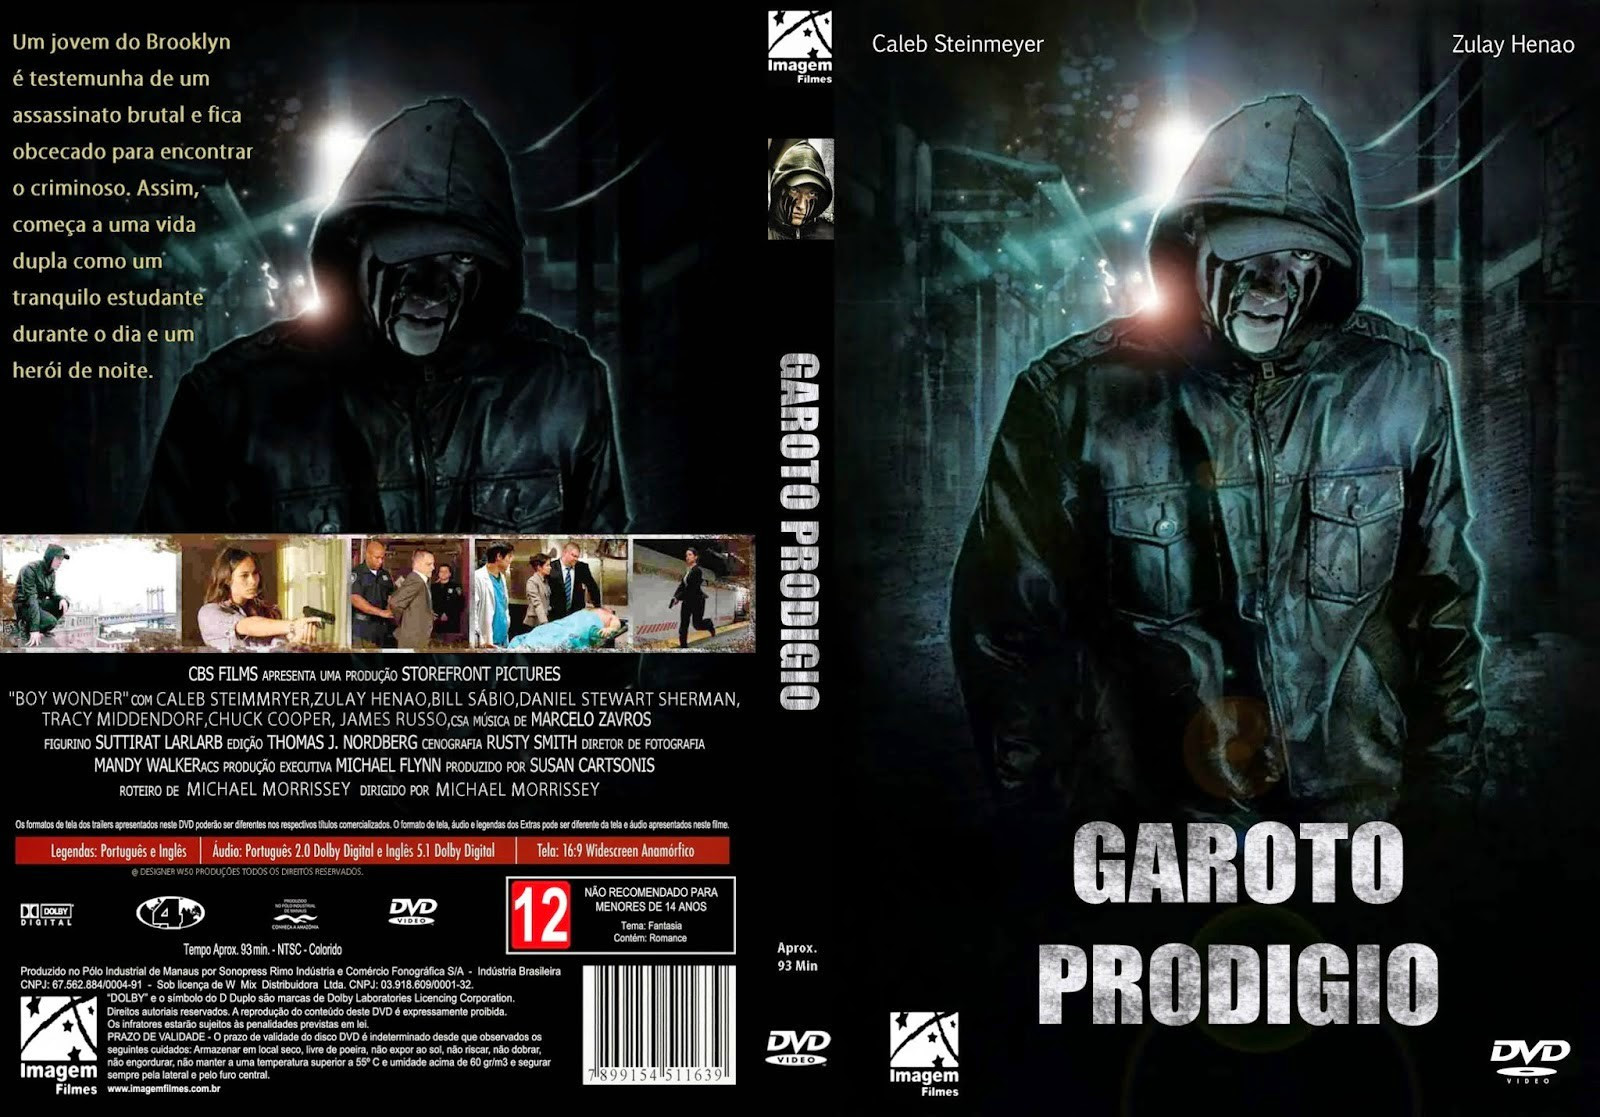 Garoto Prodígio Torrent – BluRay Rip 720p Dual Áudio / BluRay Rip 1080p Dublado 5.1 (2014)